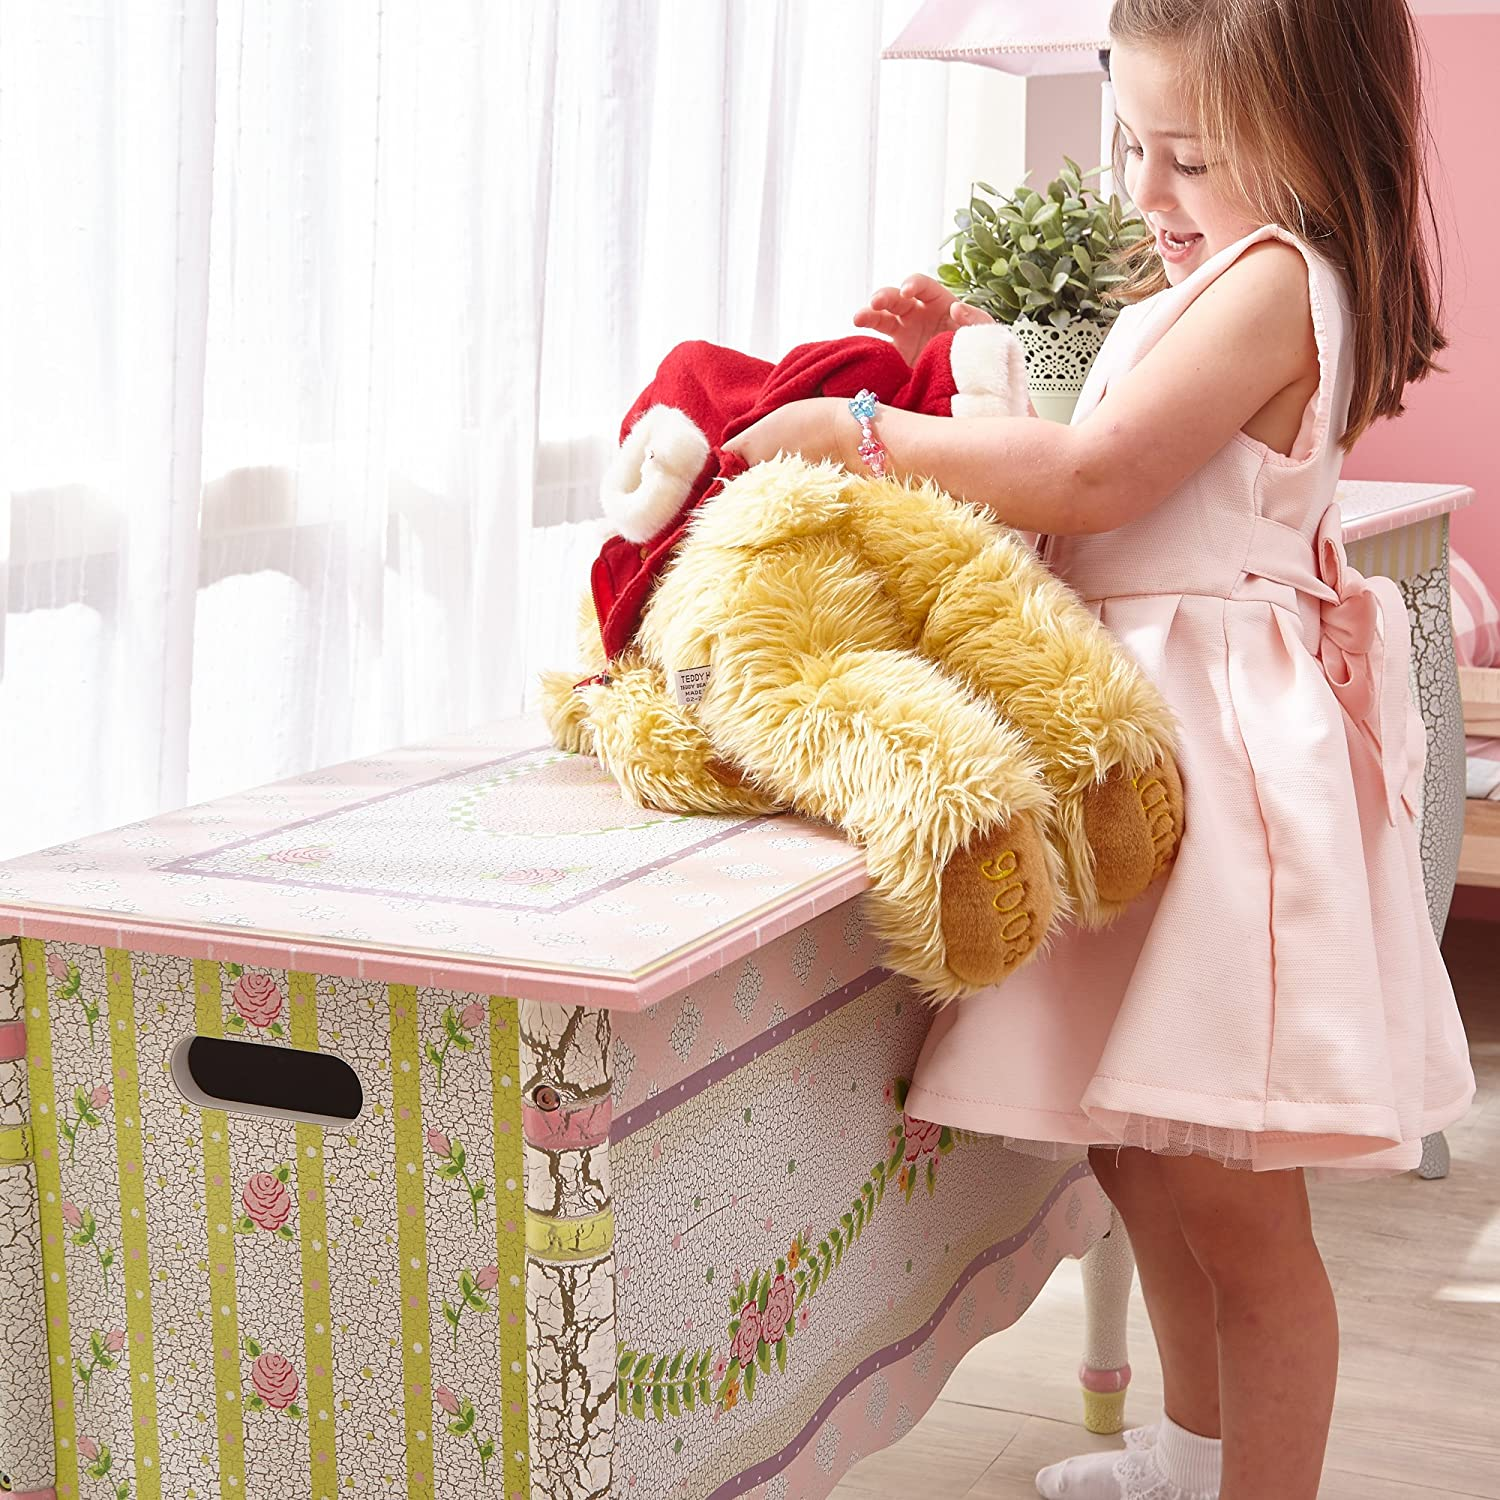 Kids wooden toy chest sunny safari - Amazon Com Fantasy Fields Crackled Rose Thematic Kids Wooden Toy Chest With Safety Hinges Imagination Inspiring Hand Crafted Hand Painted Details